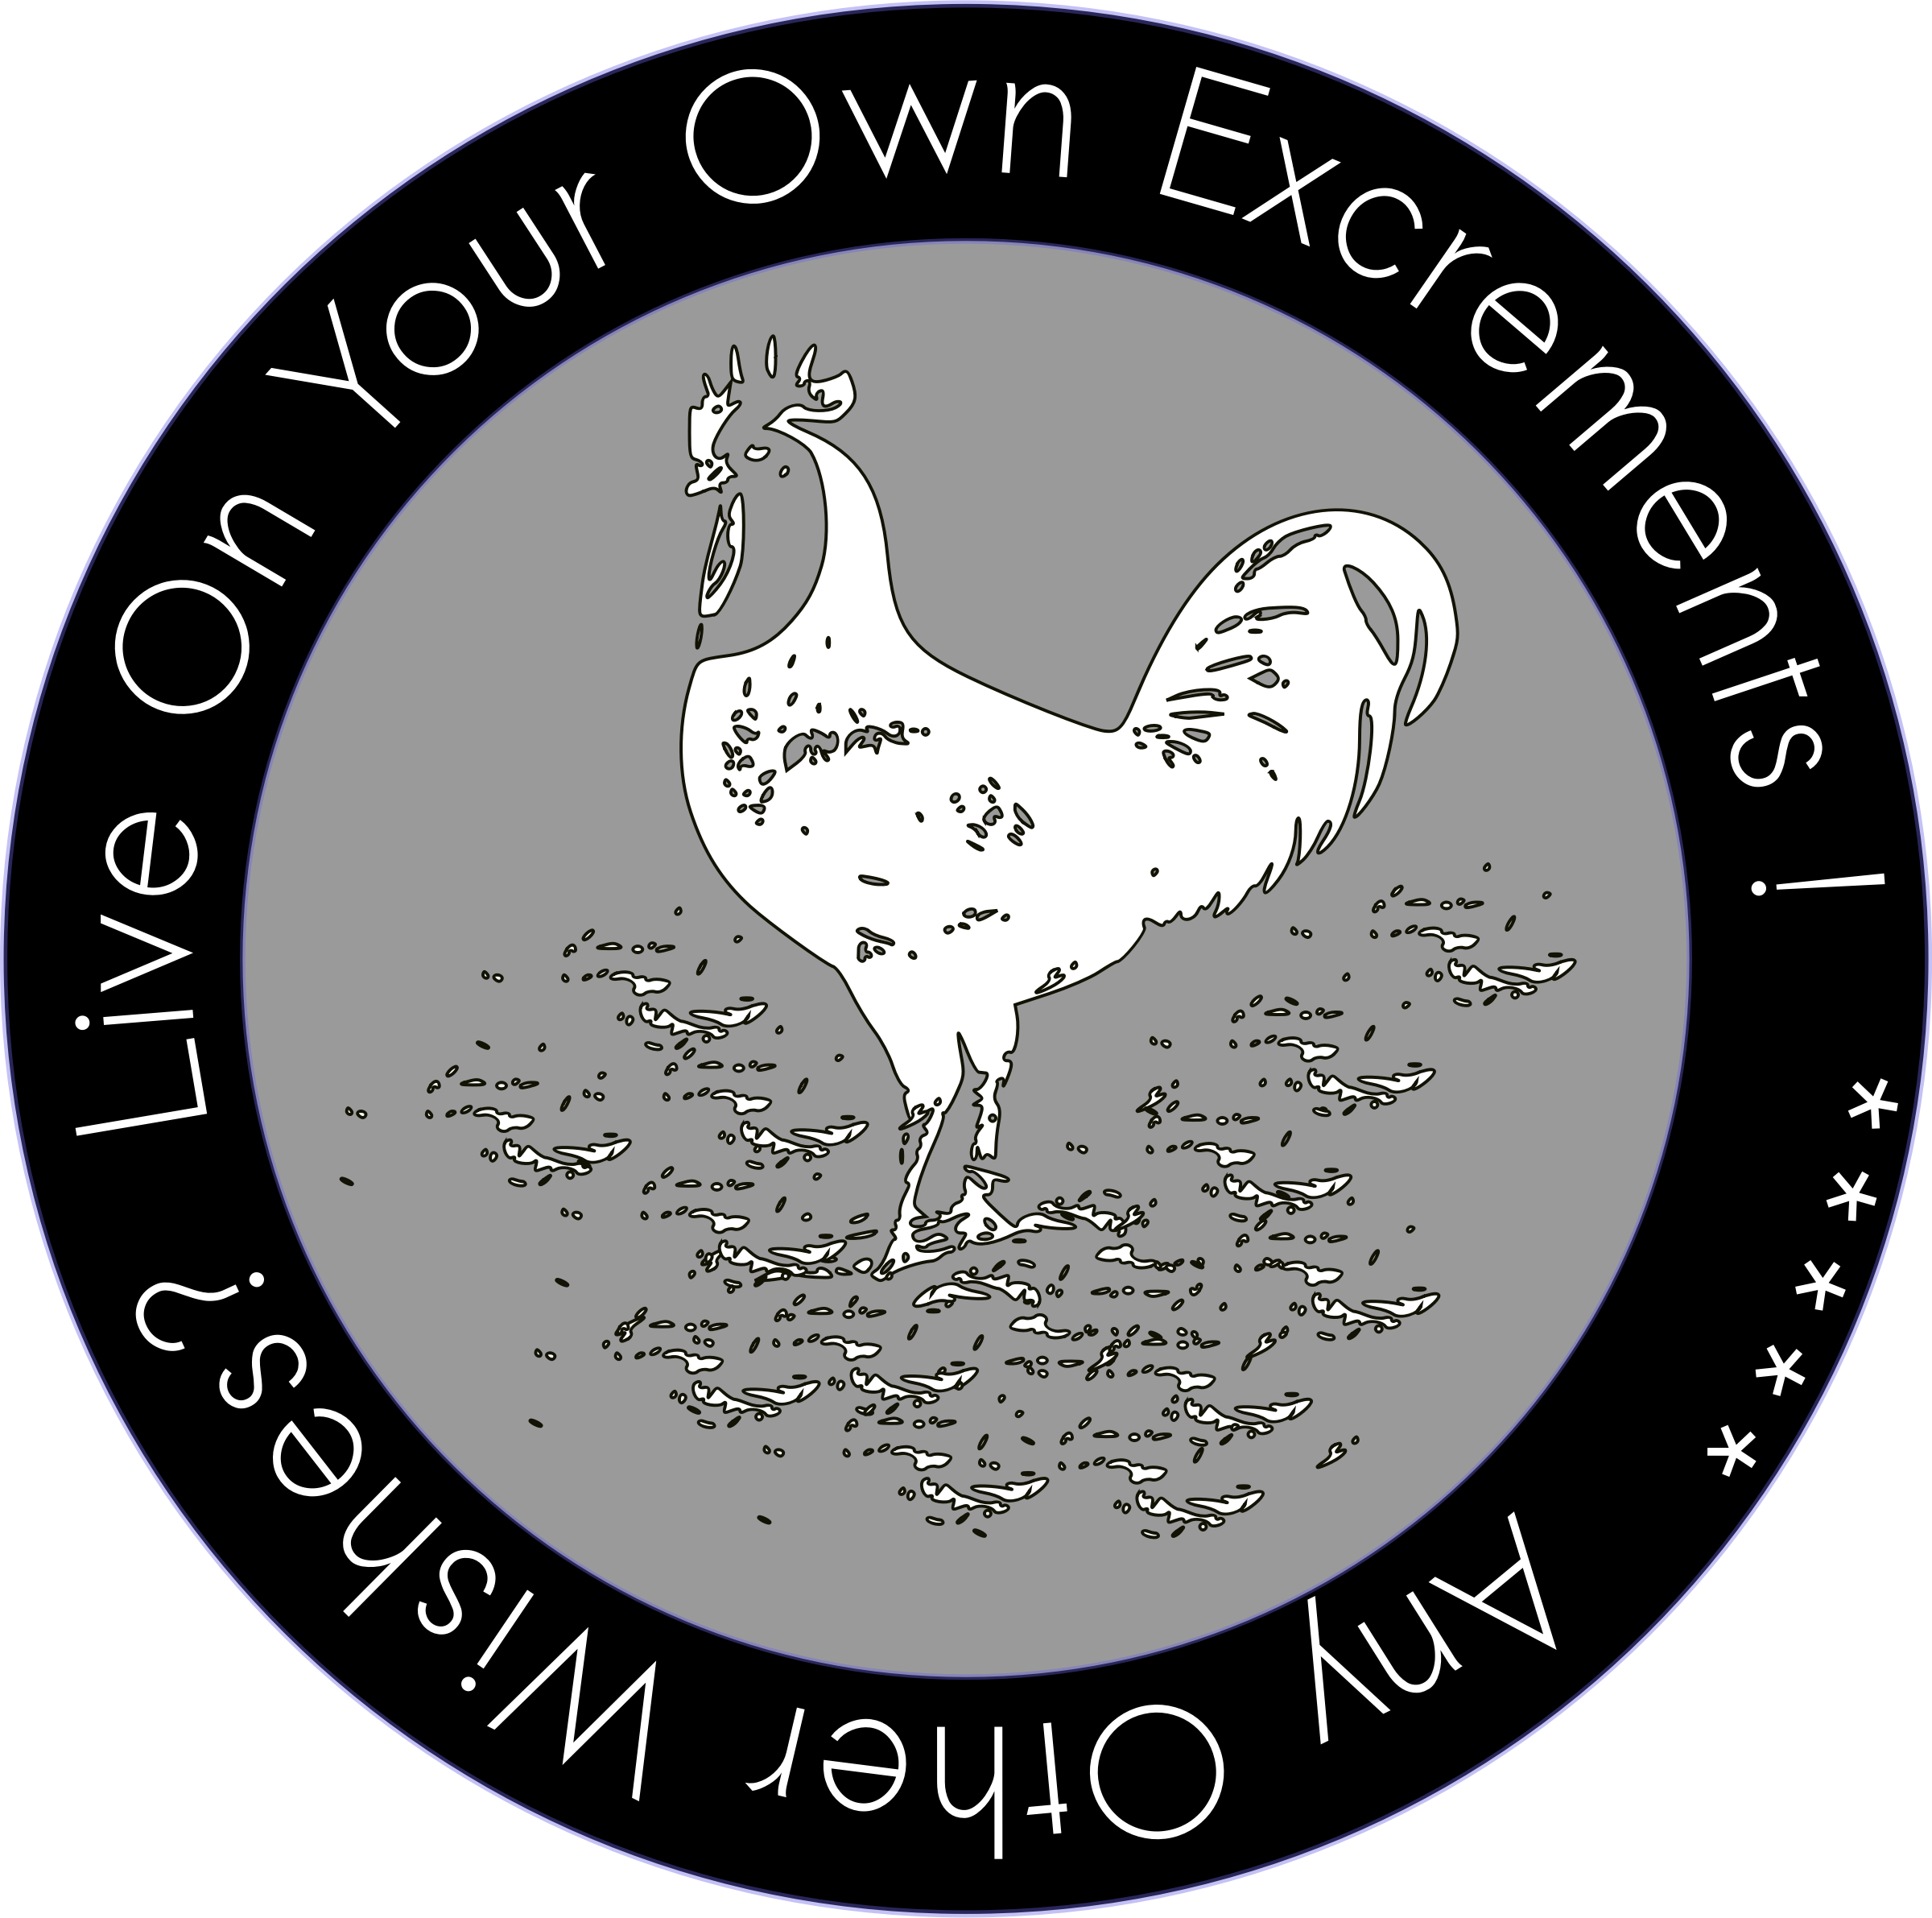 LIVE ON YOUR OWN EXCREMENTS -- Patch by cibo00